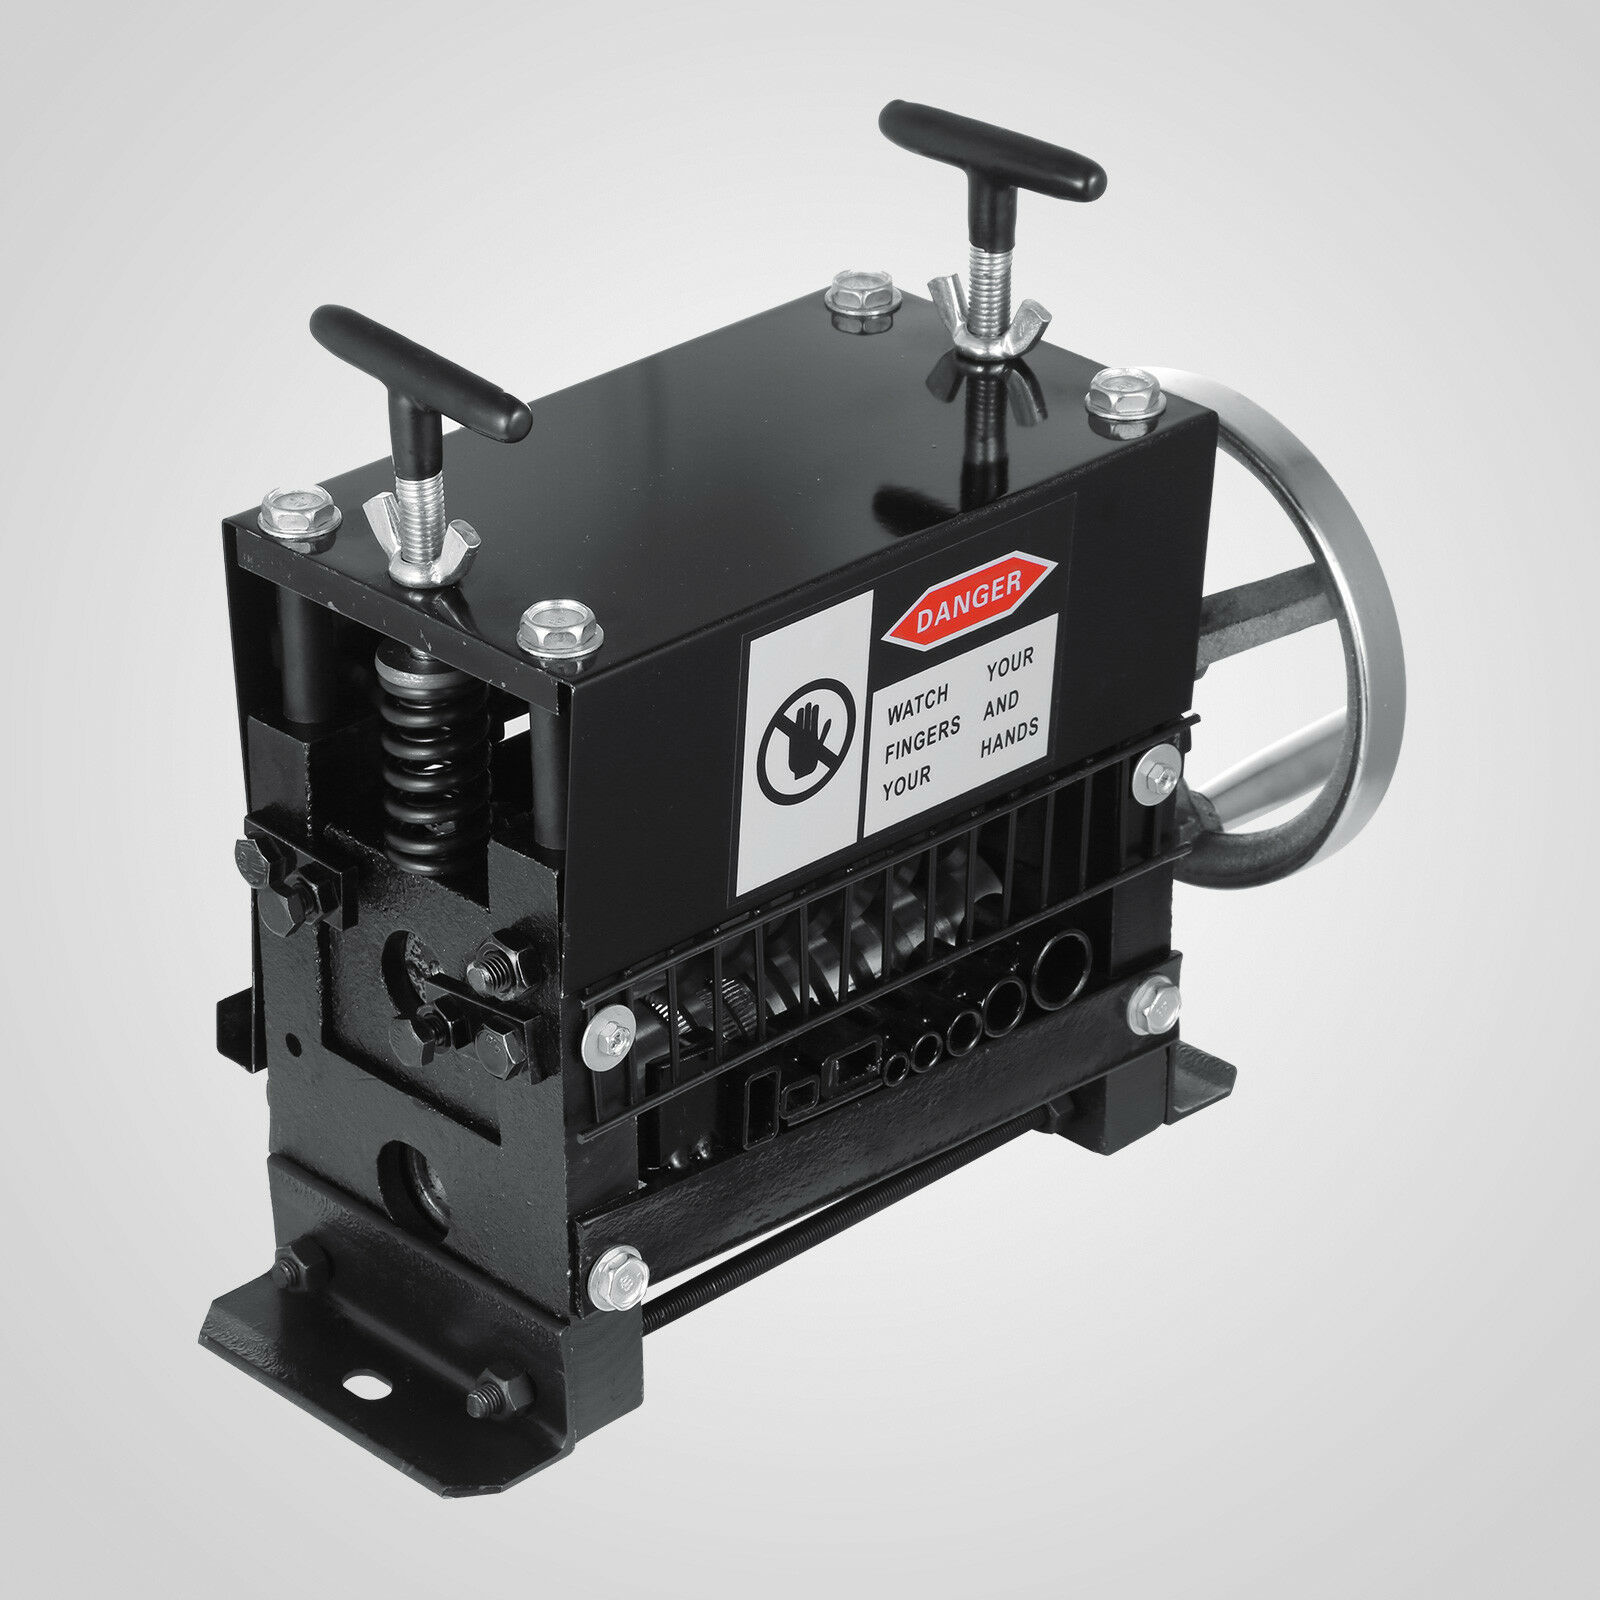 free-shipping-wire-peeling-stripping-machine-stripper-peeler-machine-1-20-mm-cable